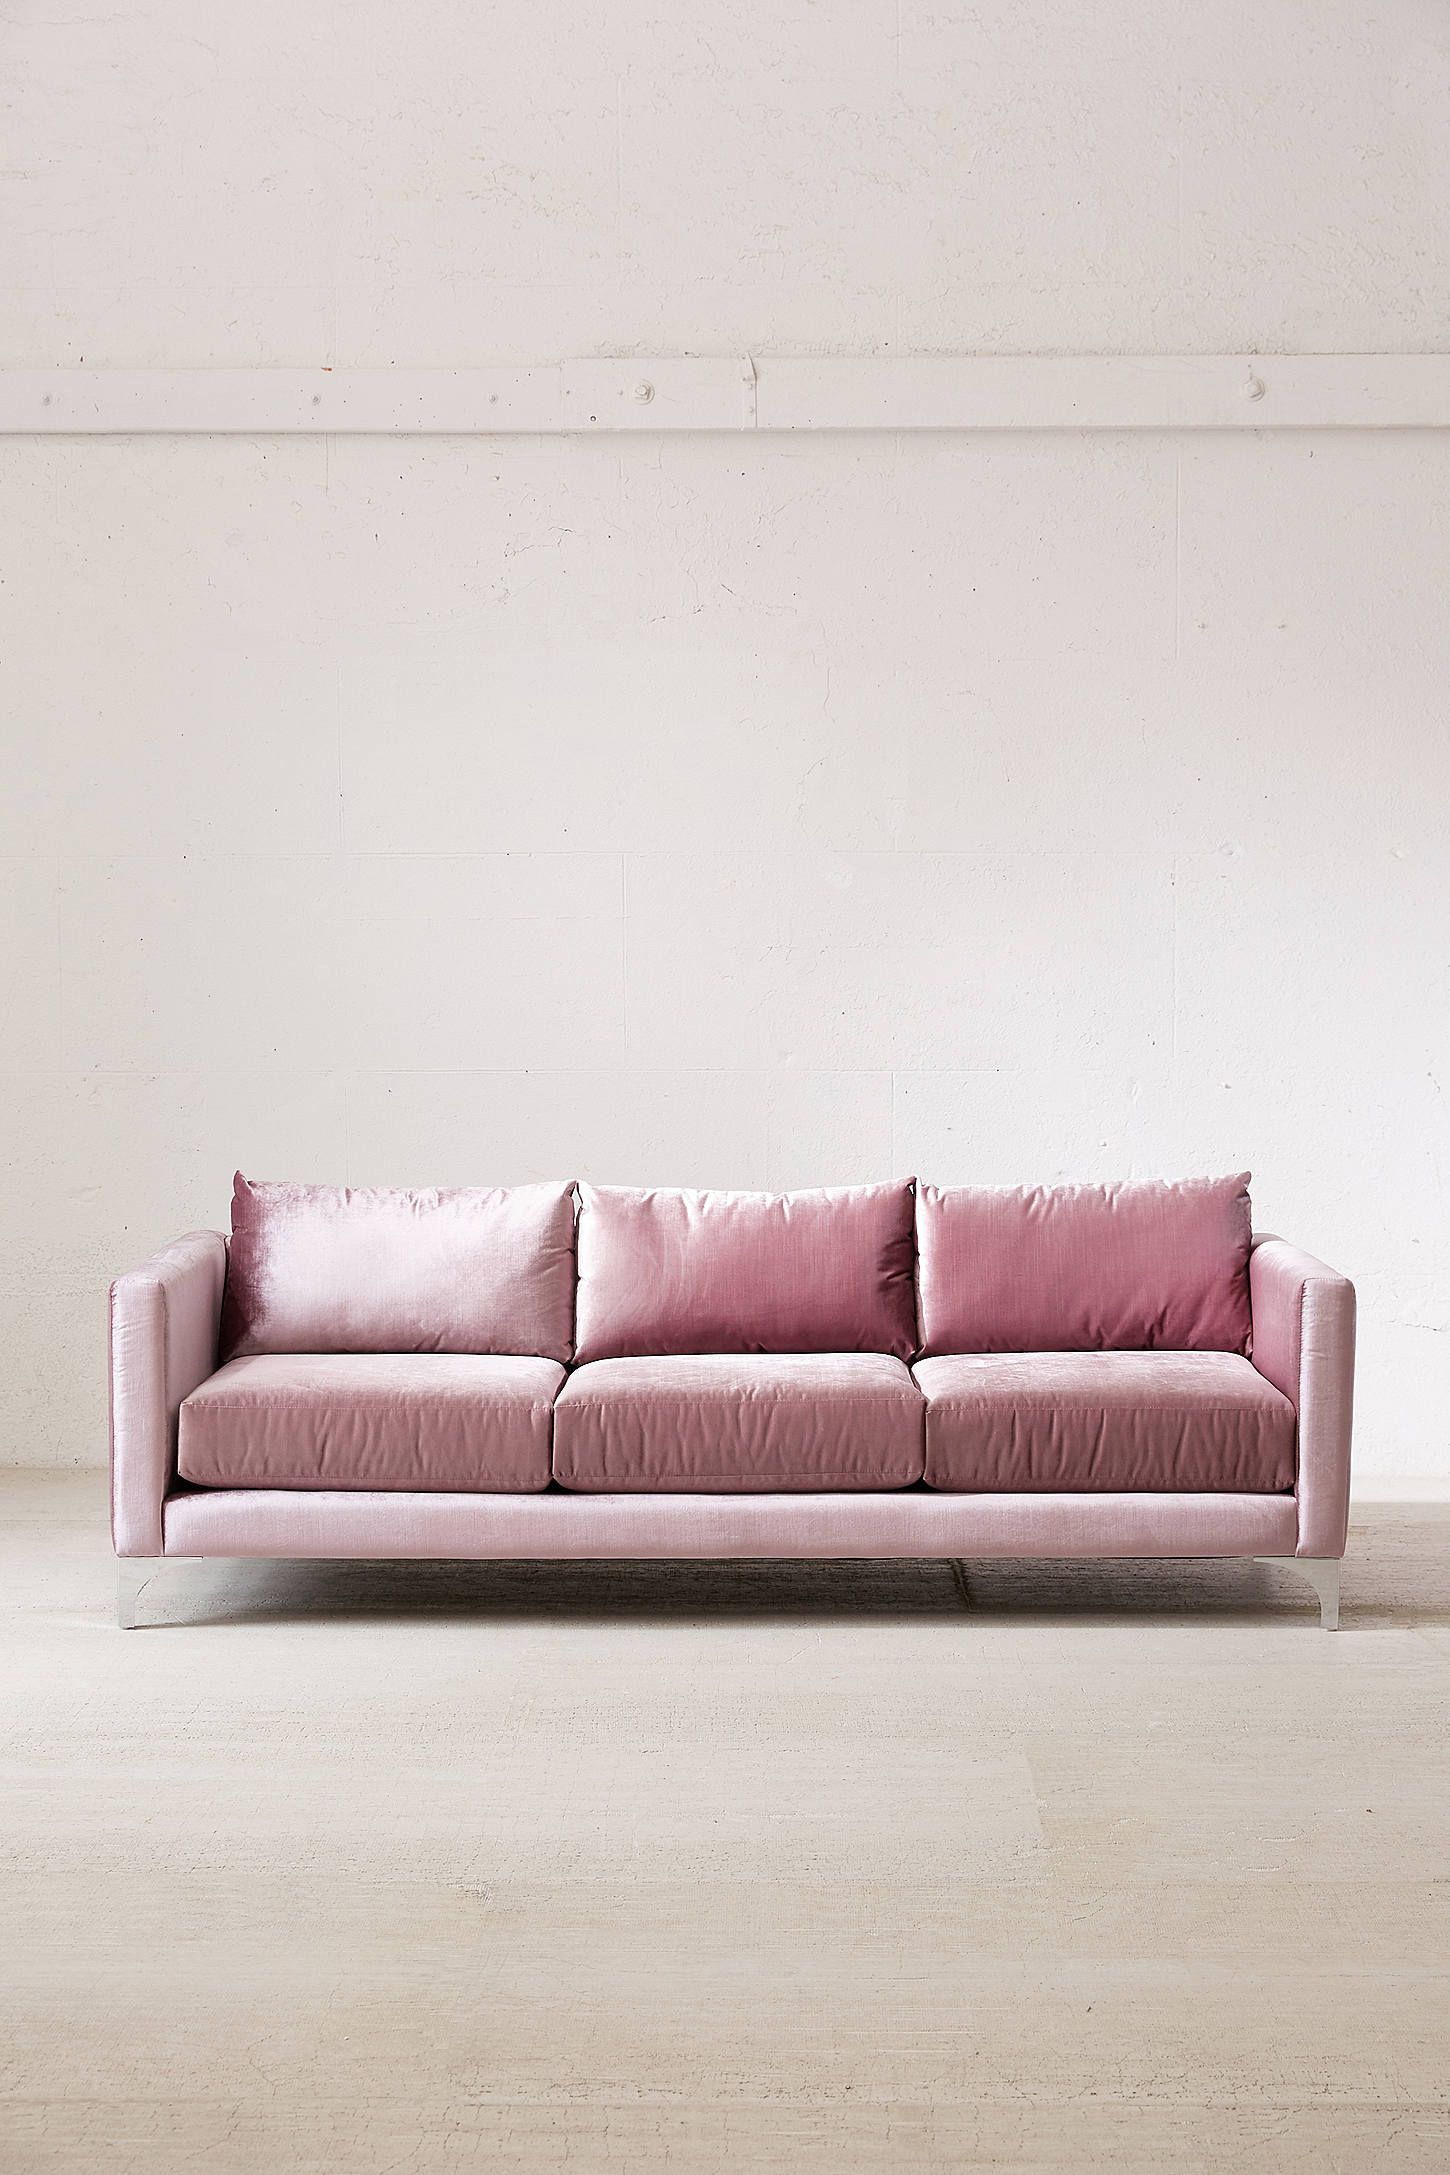 Interio Sofa Aktion Besten Bettsofa Design Ideen December 2016